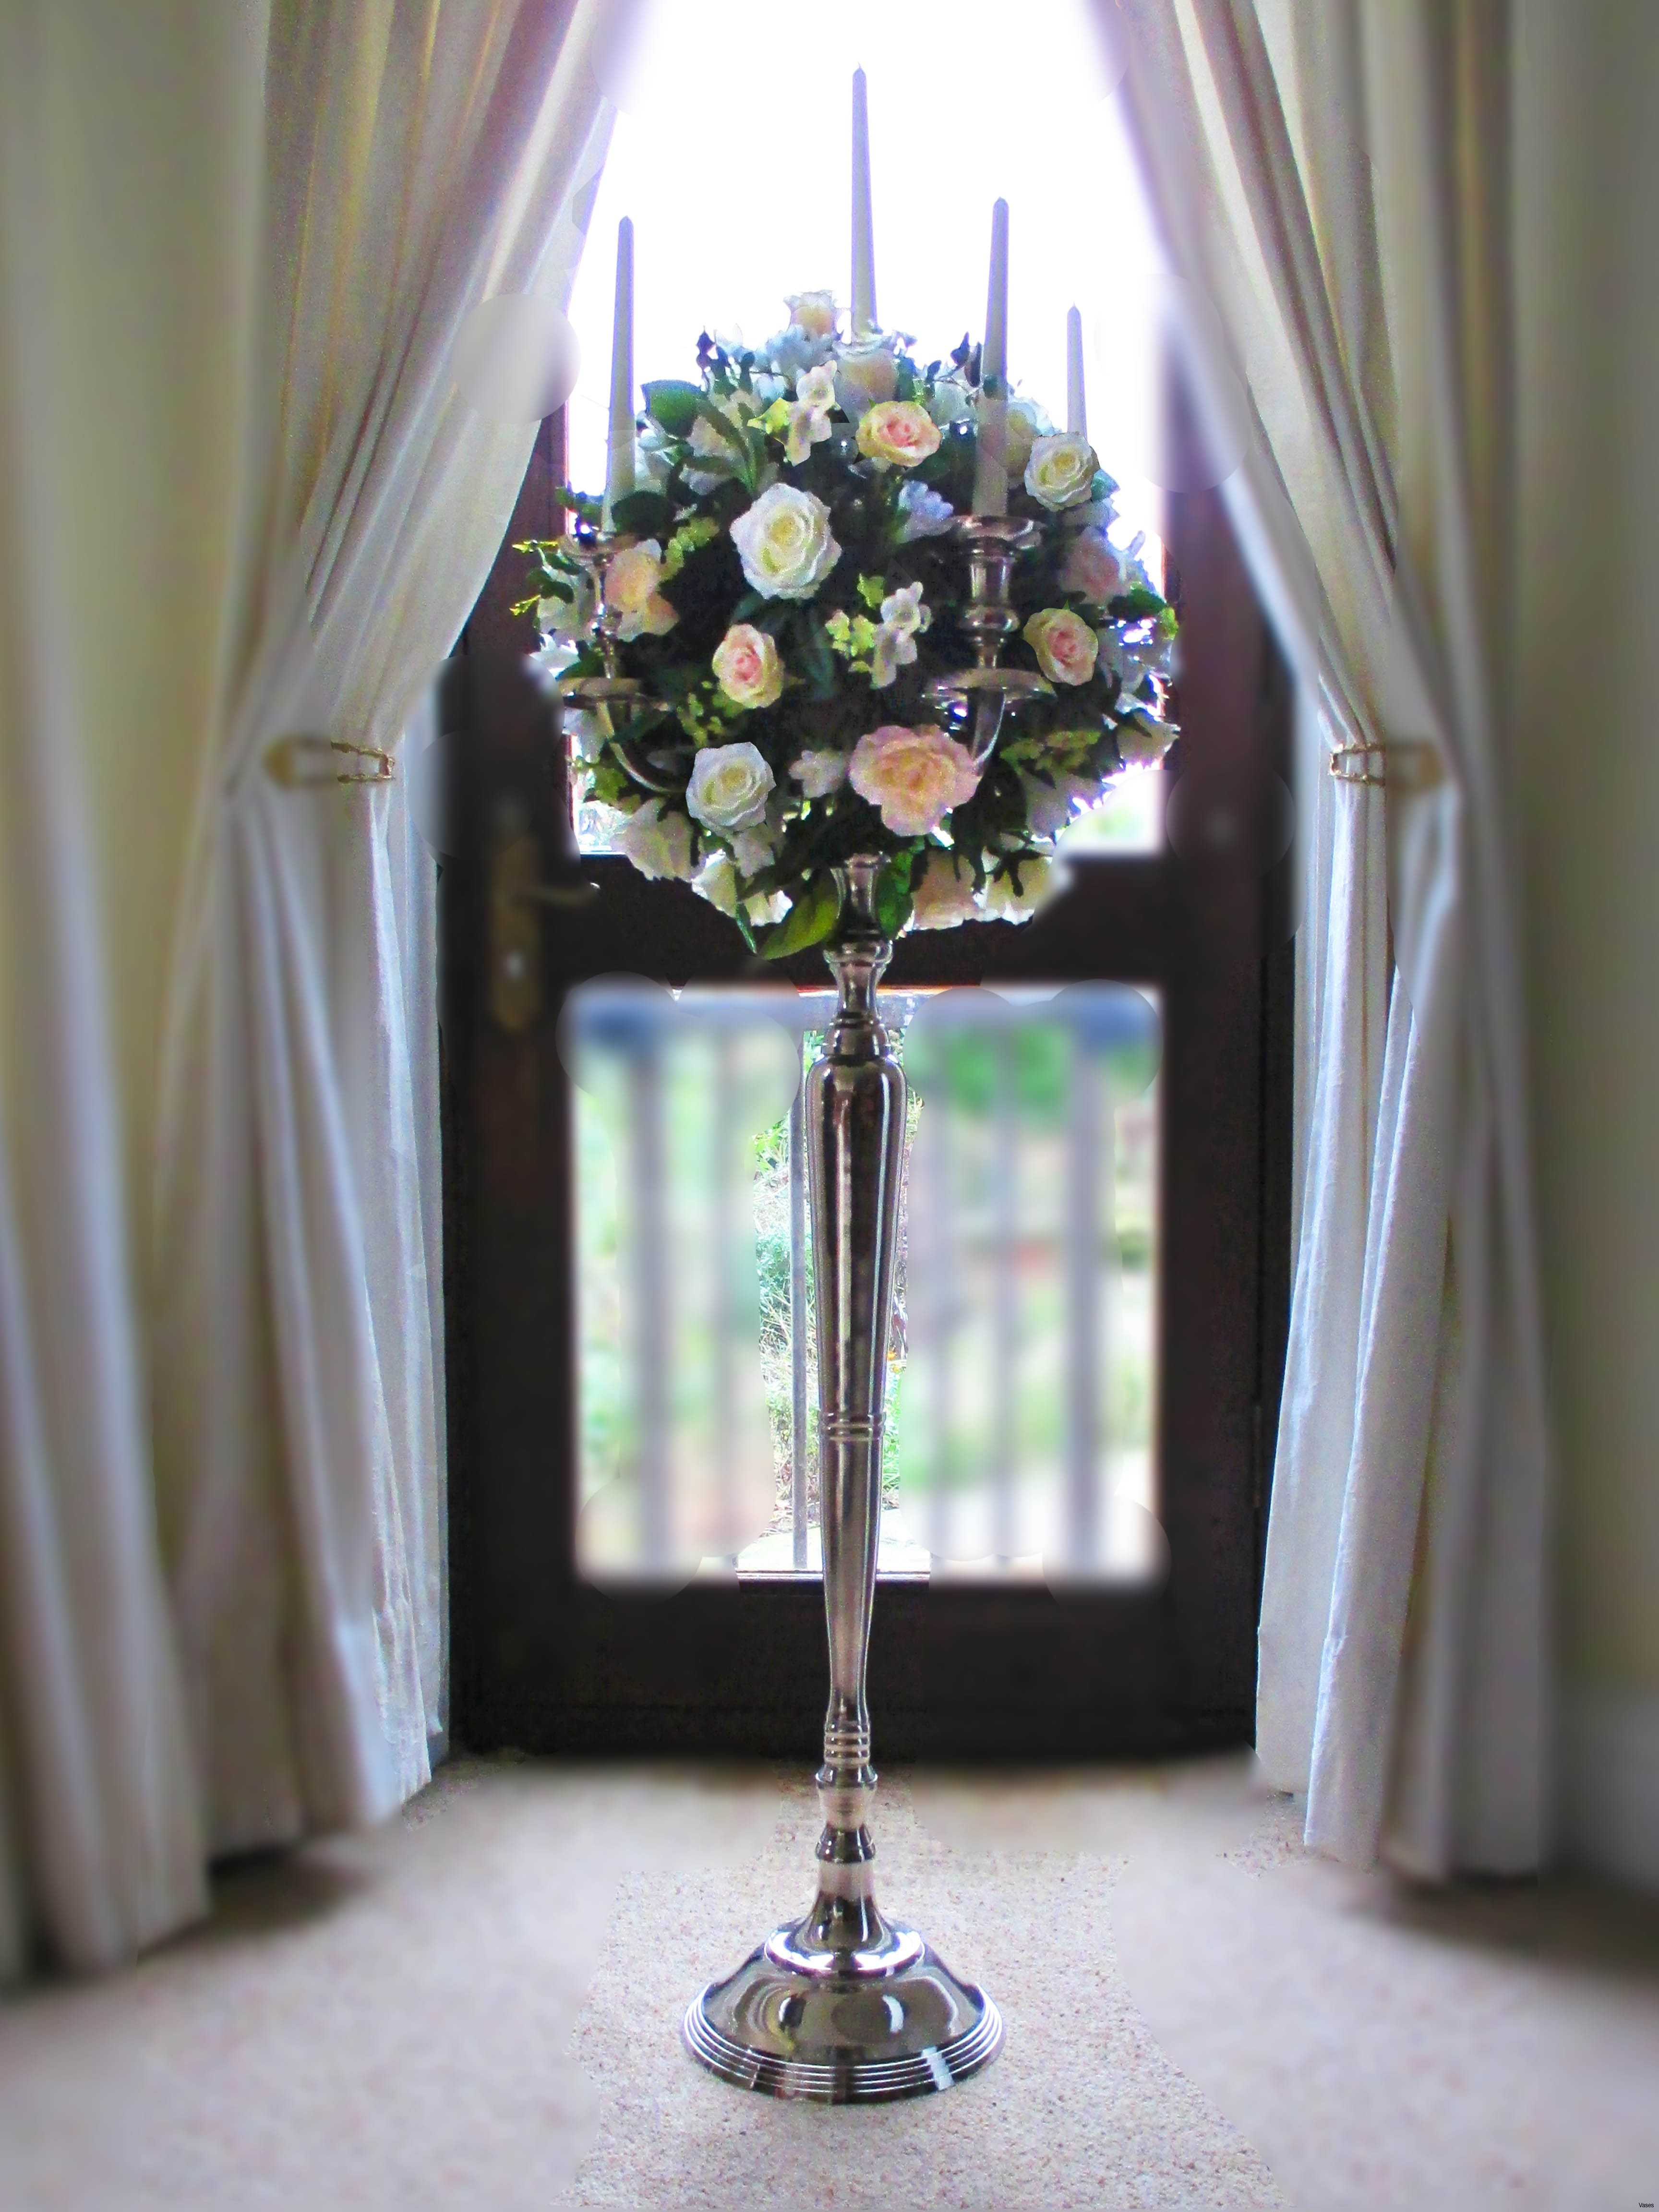 Antique Face Vases Of Pictures Of Silver Square Vase Vases Artificial Plants Collection for Cheap Wedding Bouquets Packages 5397h Vases Silver Vase Leeds I 0d